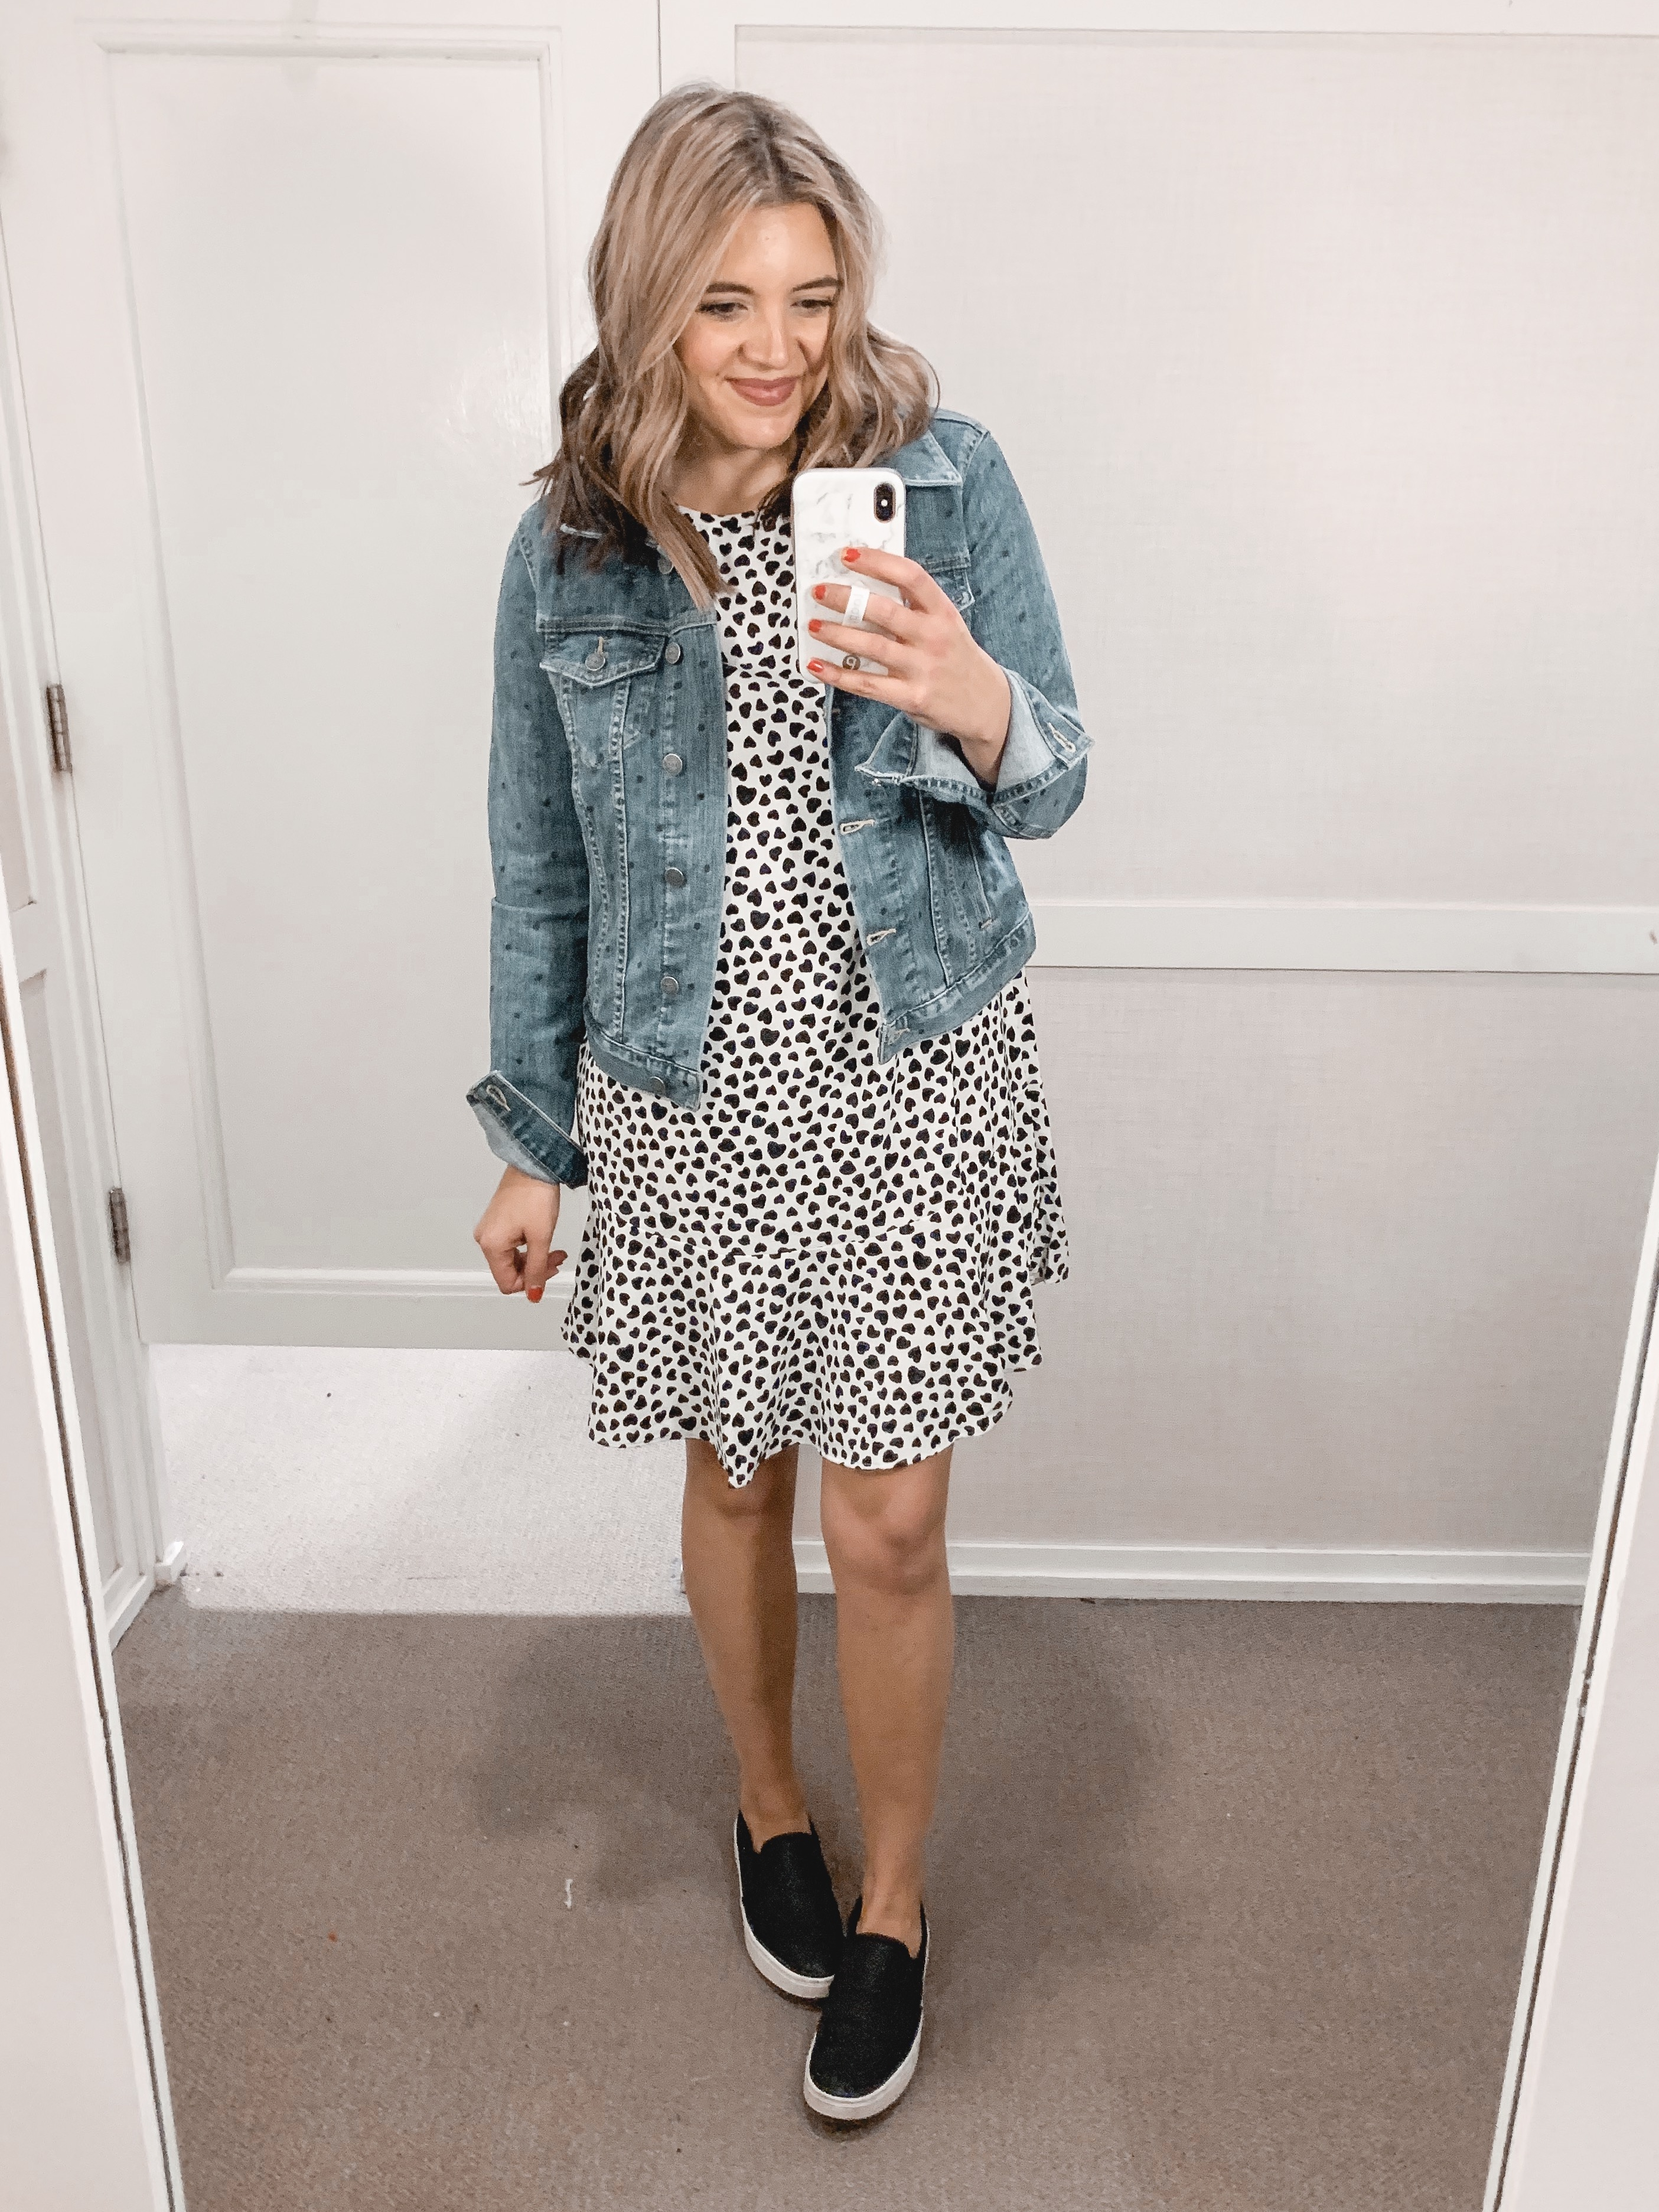 Affordable style blogger Lauren Dix shares a January Loft try on with over ten winter outfits!